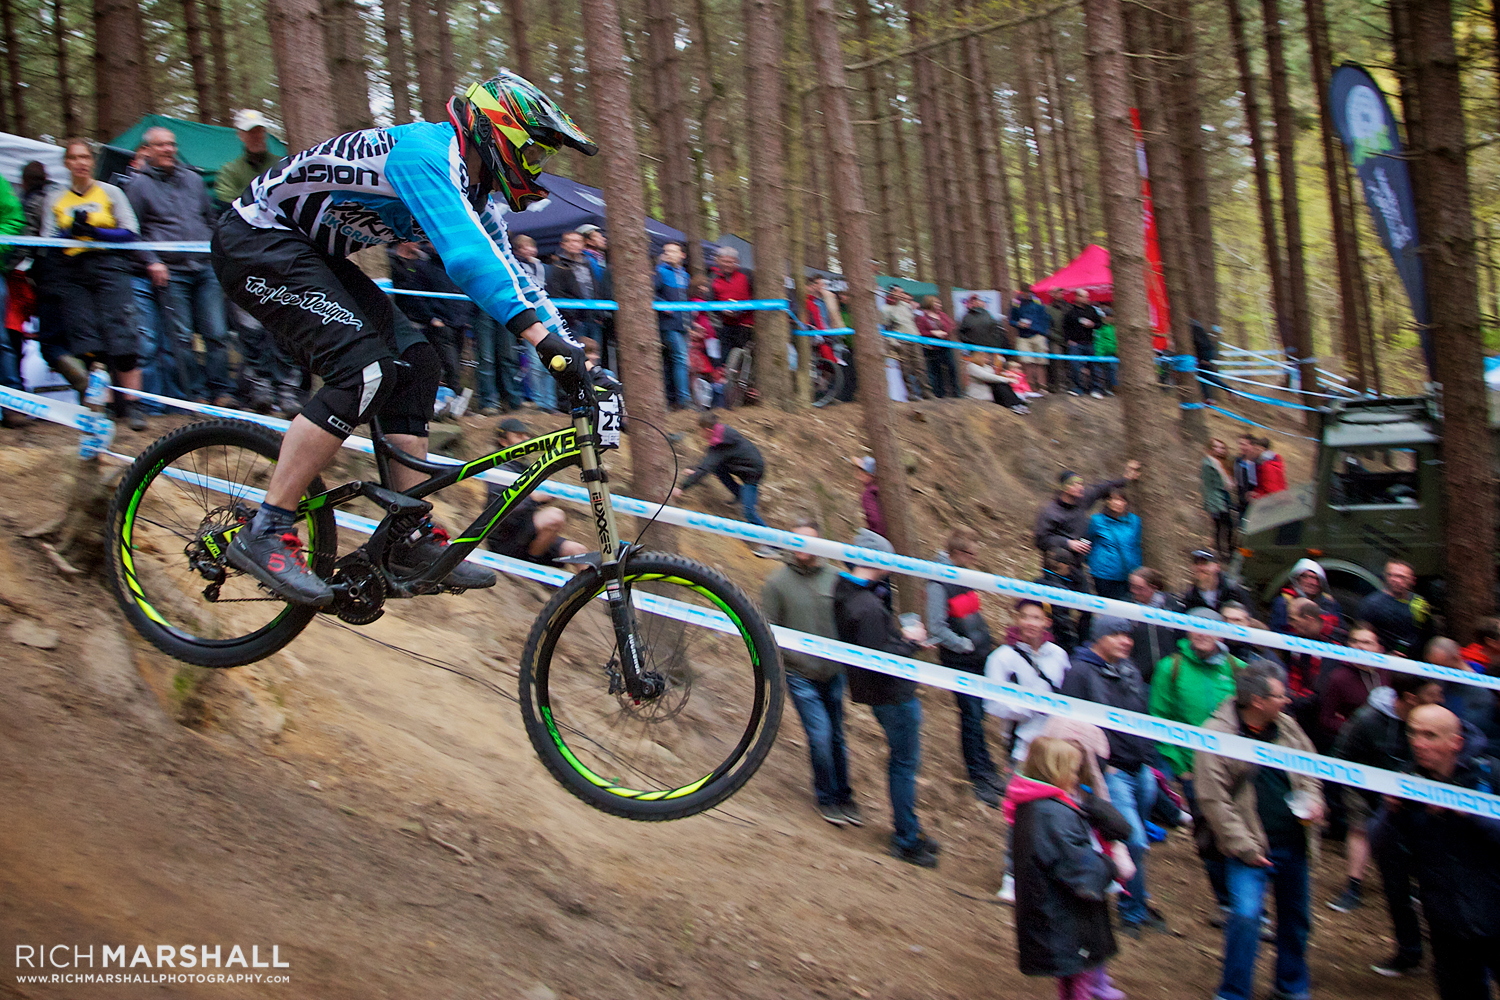 Steel City Downhill